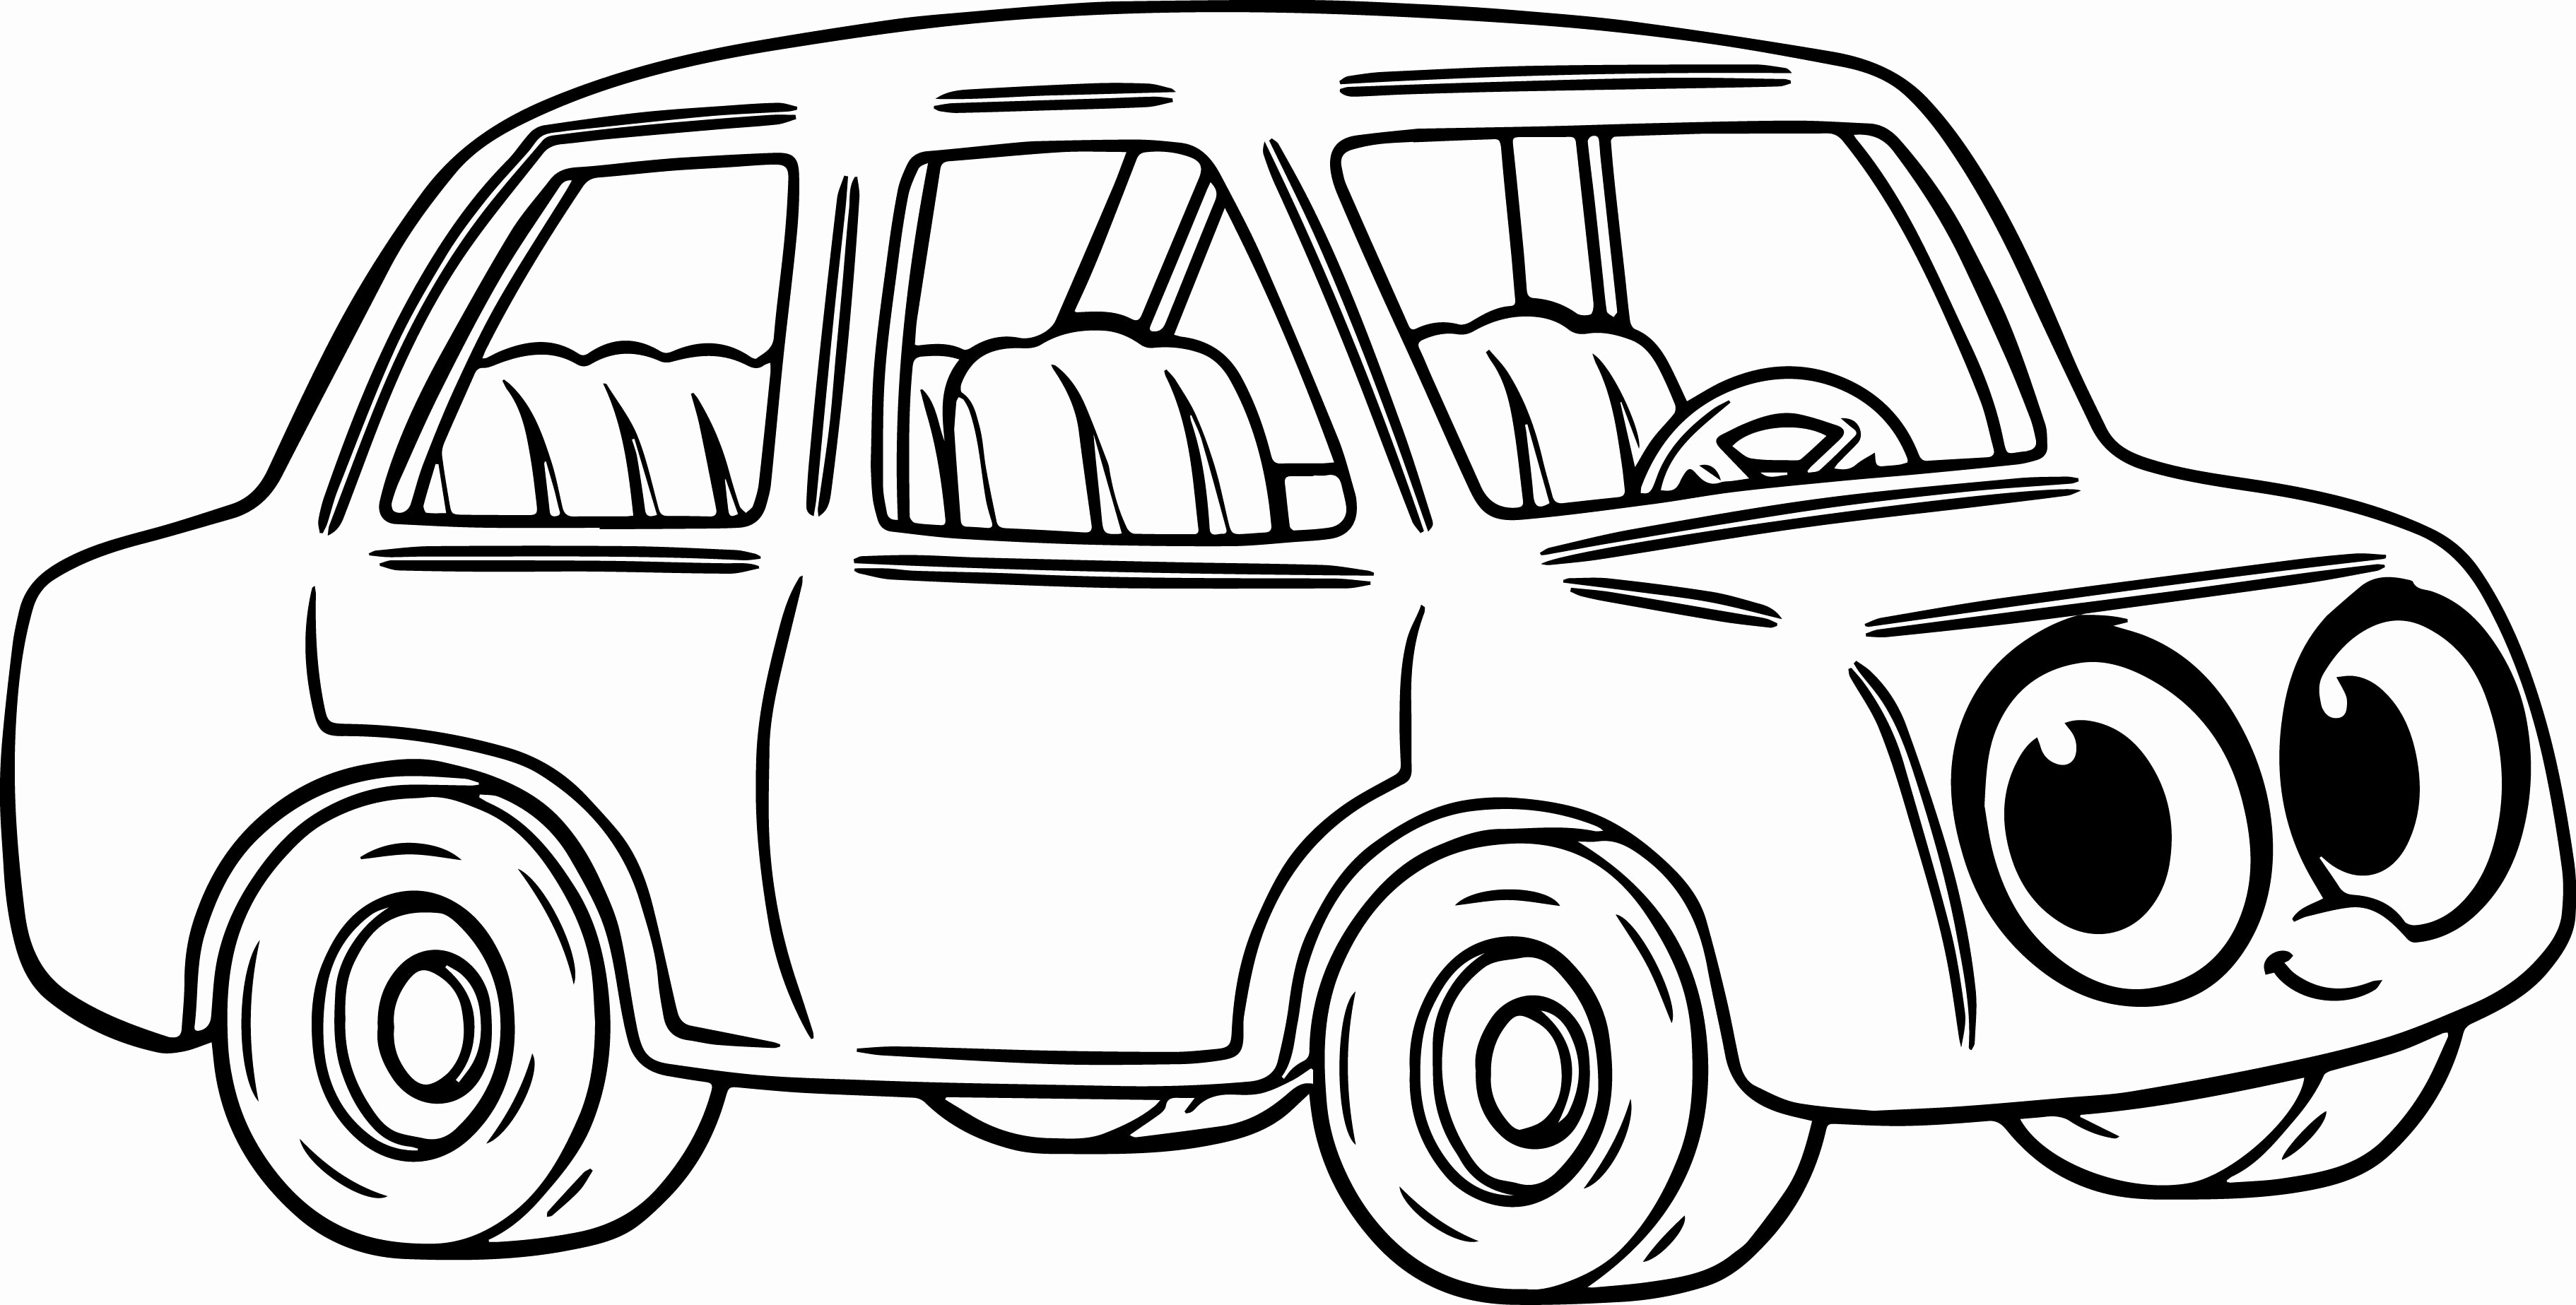 colouring in cars drawing hot rod cars coloring pages kids play color colouring in cars